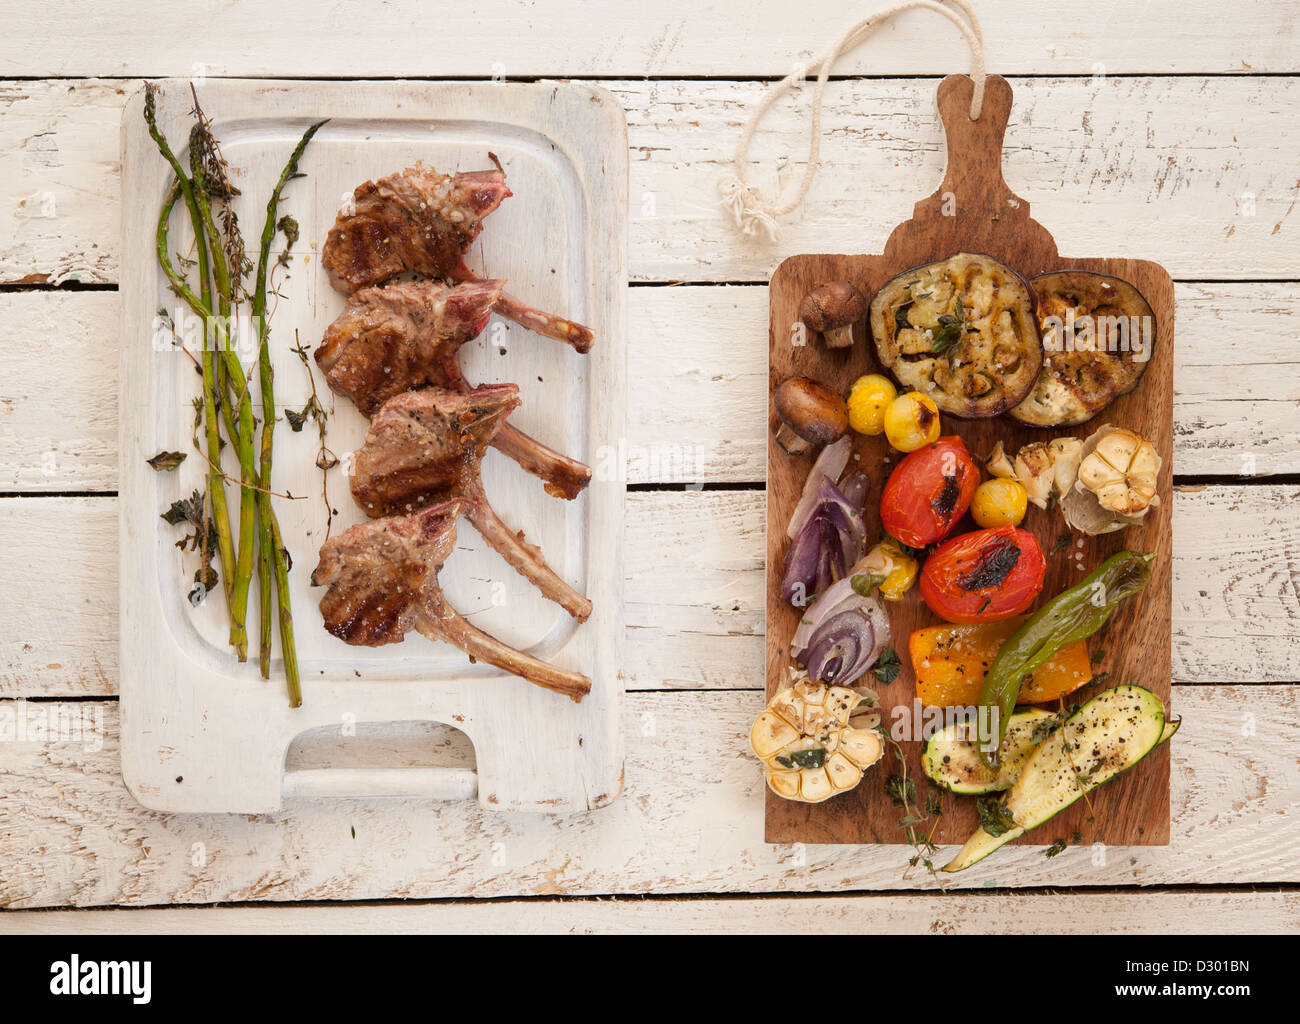 Anti Pasta And Lamp Chops On A Wooden Plate A Stylish Food Stock Photo Alamy